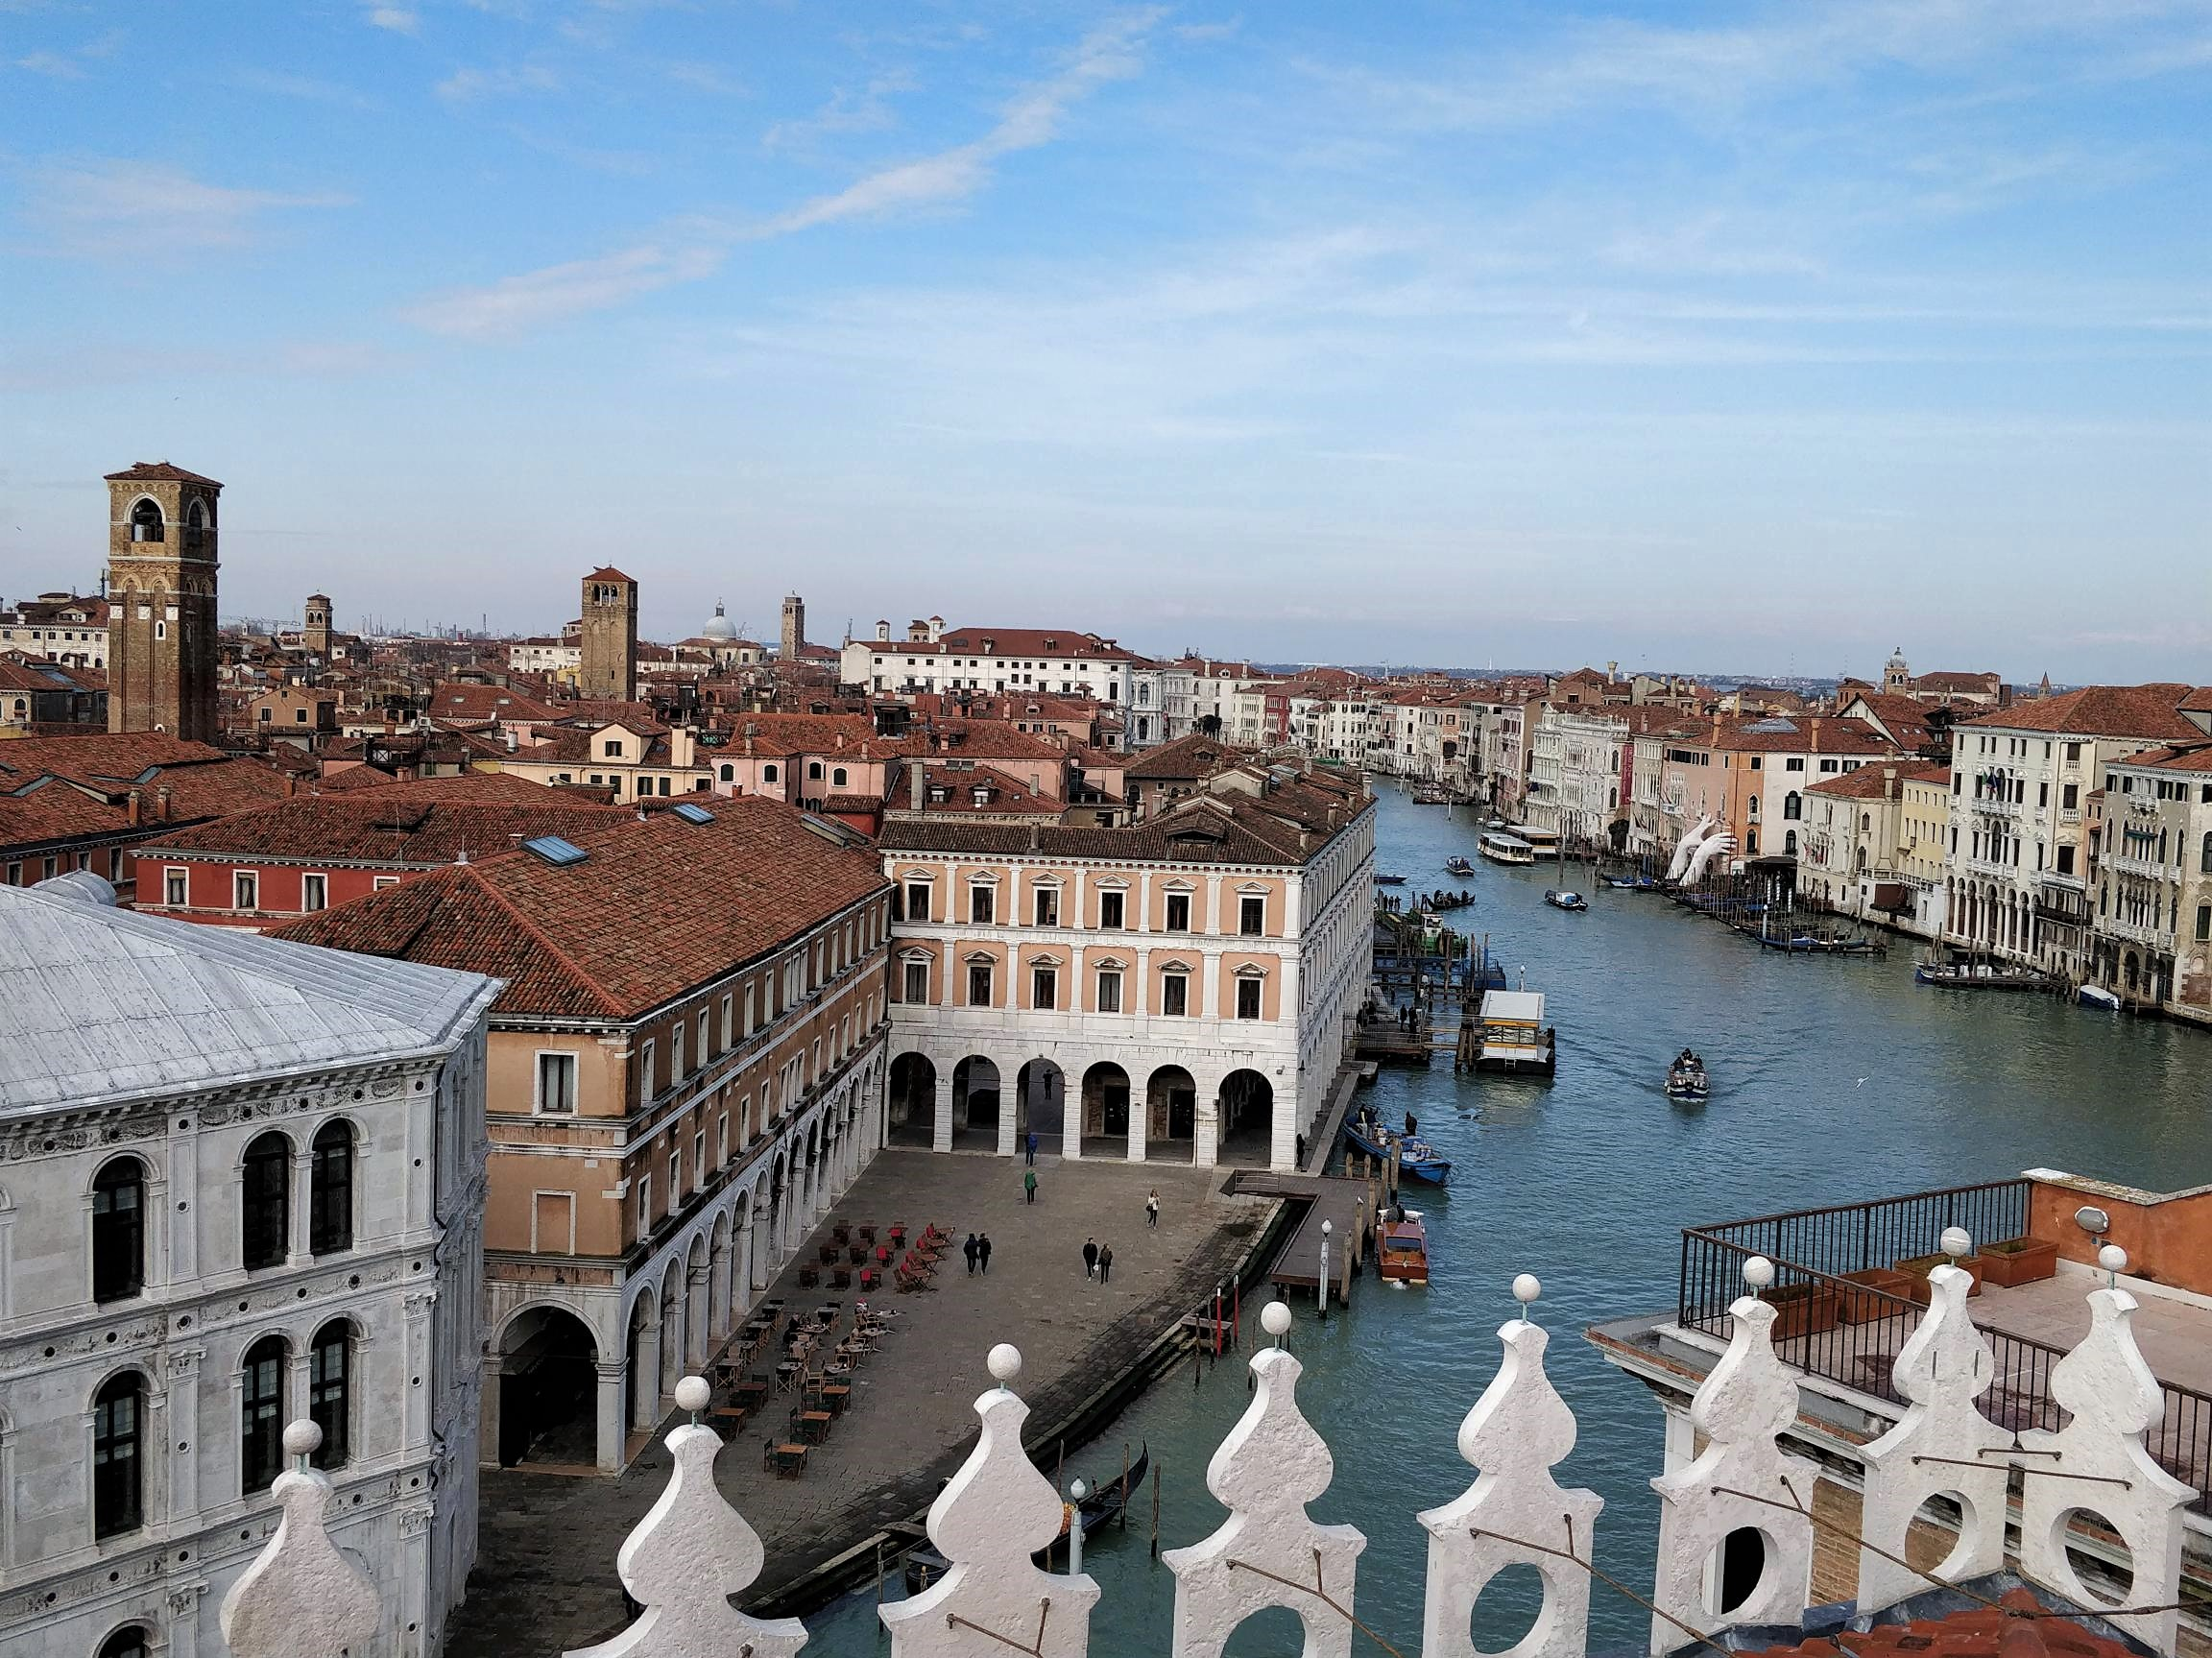 Top 3 Restaurants in Venice